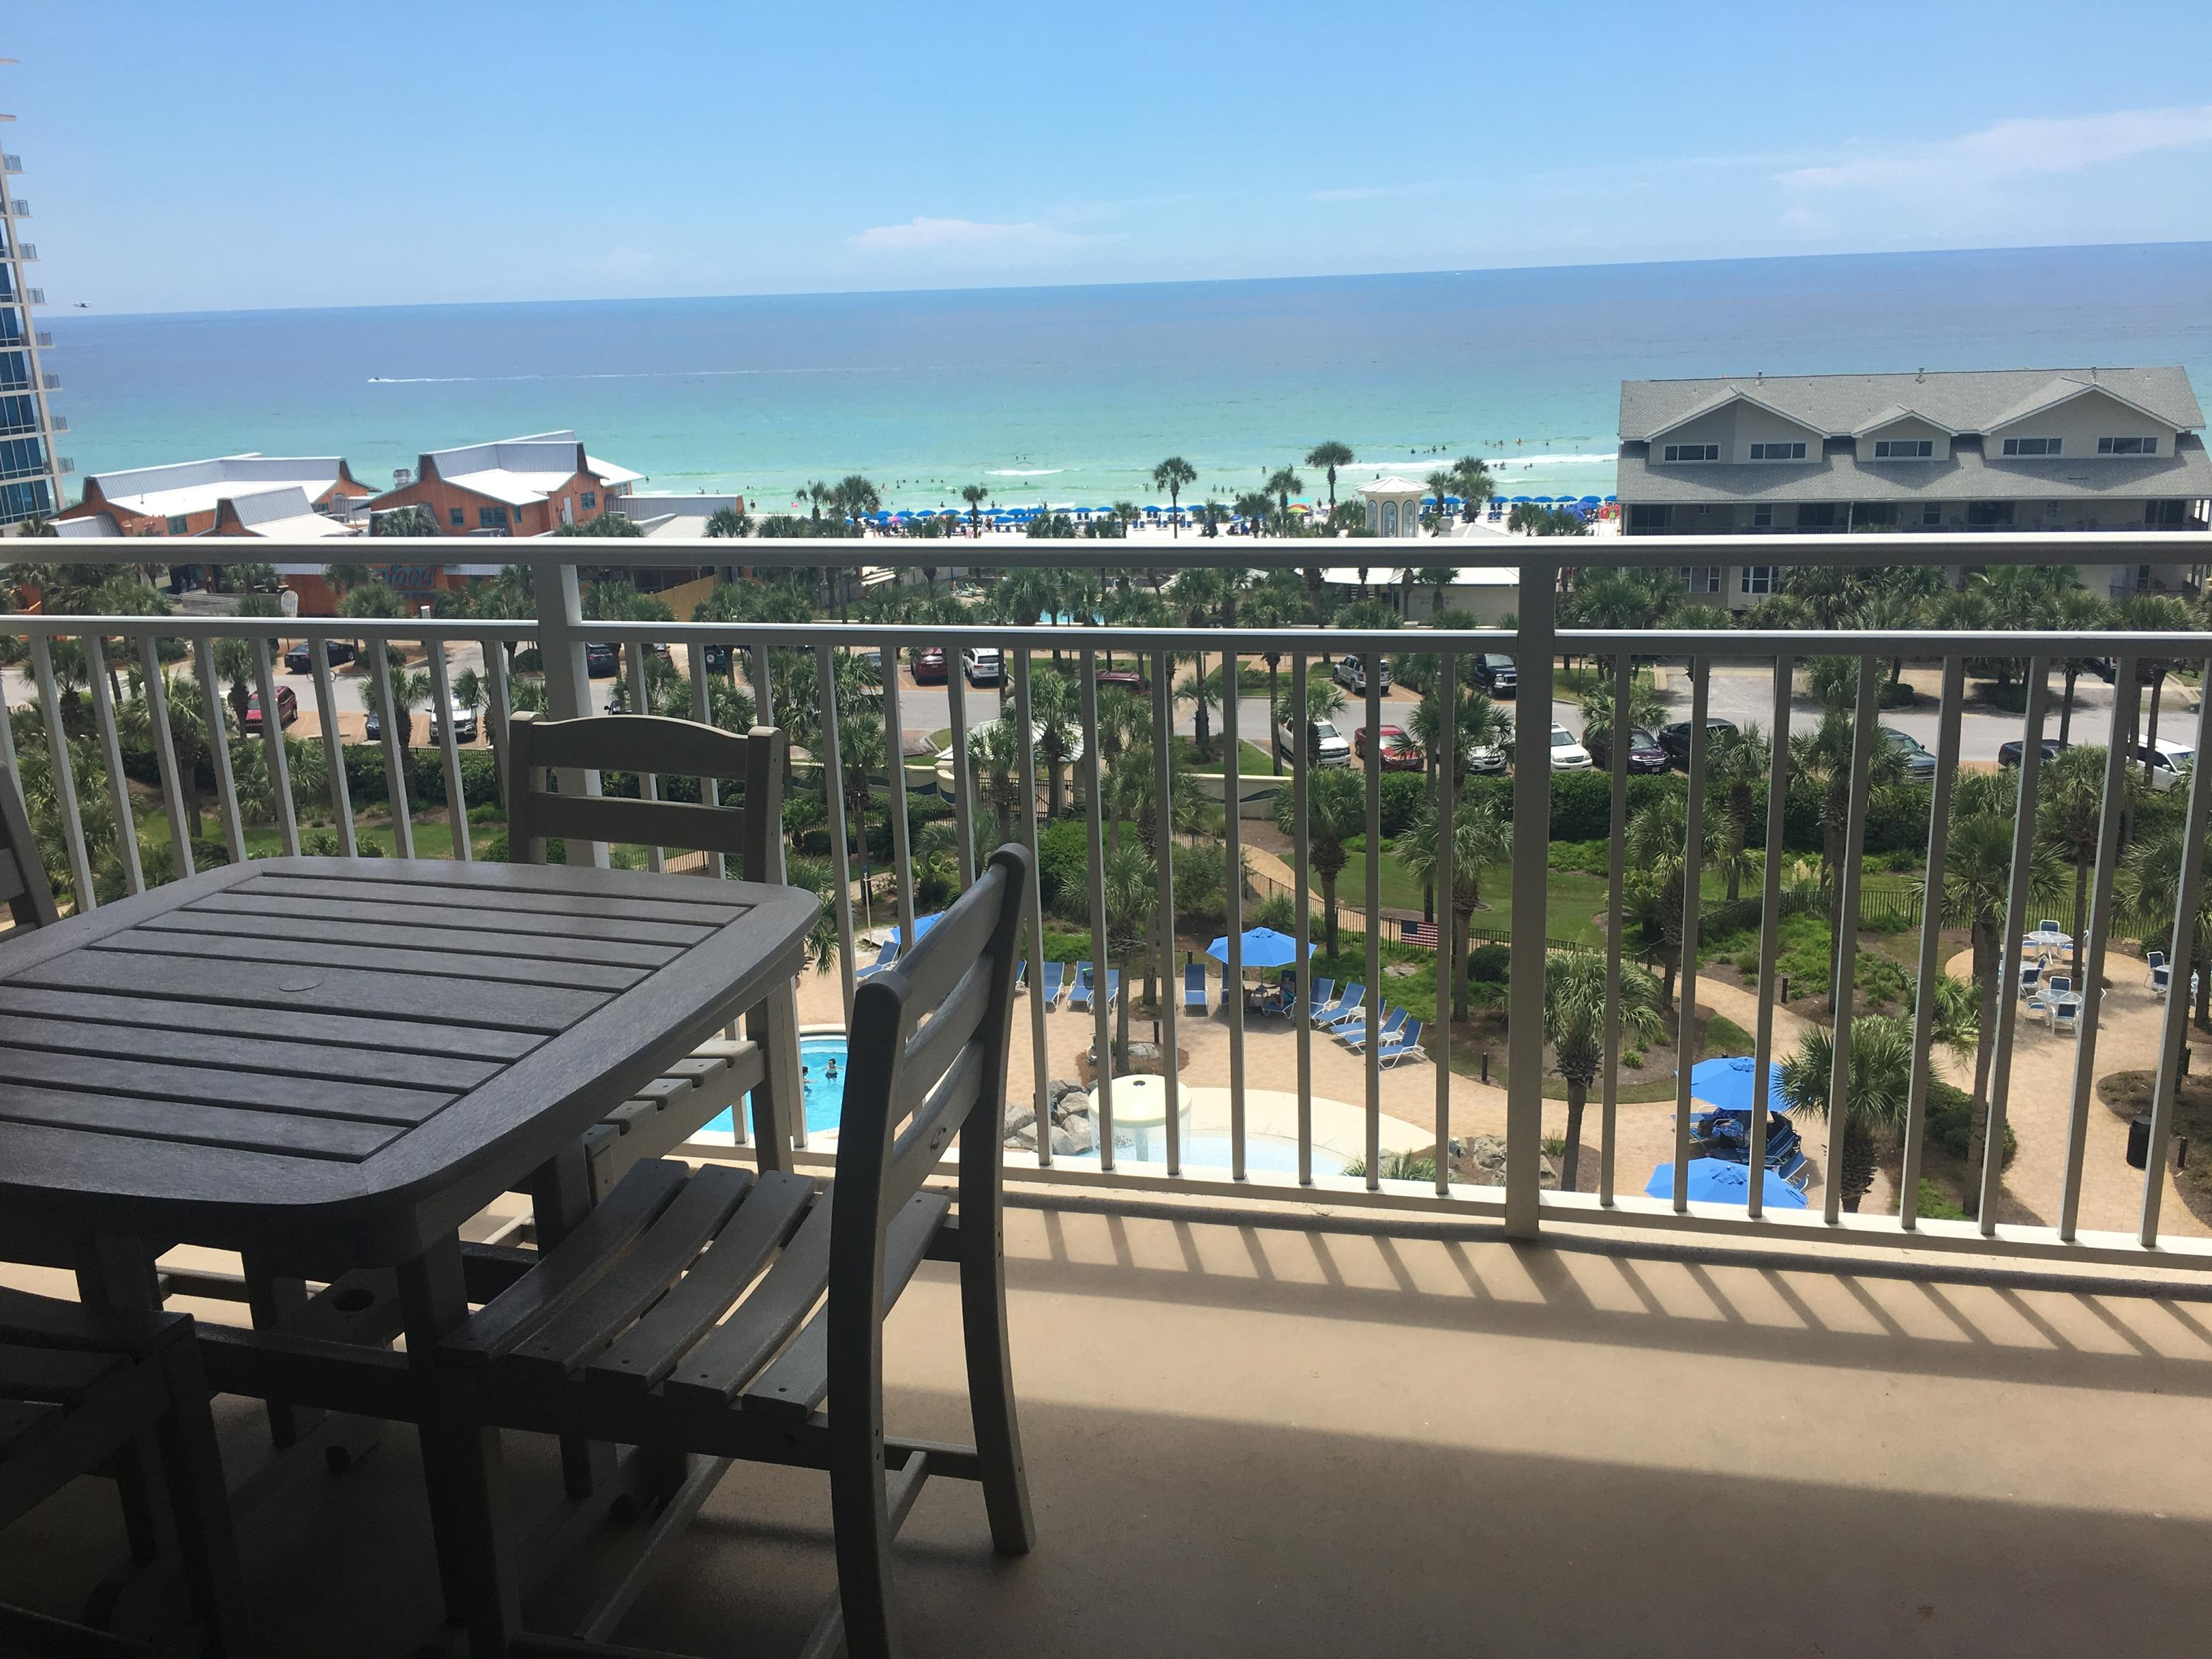 Beautiful  big 2 bedroom 2 bath condo located in ideal location of the bldg & offering outstanding views of the gulf,  the pools and beautiful landscaped green areas & walkways the property offers. Master bedroom and living area open up to large balcony where you can sit & relax and enjoy the views. Sterling Shores is on almost 9 acres of gated property, 2 pools, one waterfront with Private Beach Club offering food & drinks during peak season & deck to enjoy the sunsets. Also large pool with mushroom fountain and 0 gravity entrance for all to enjoy. Great rental income!